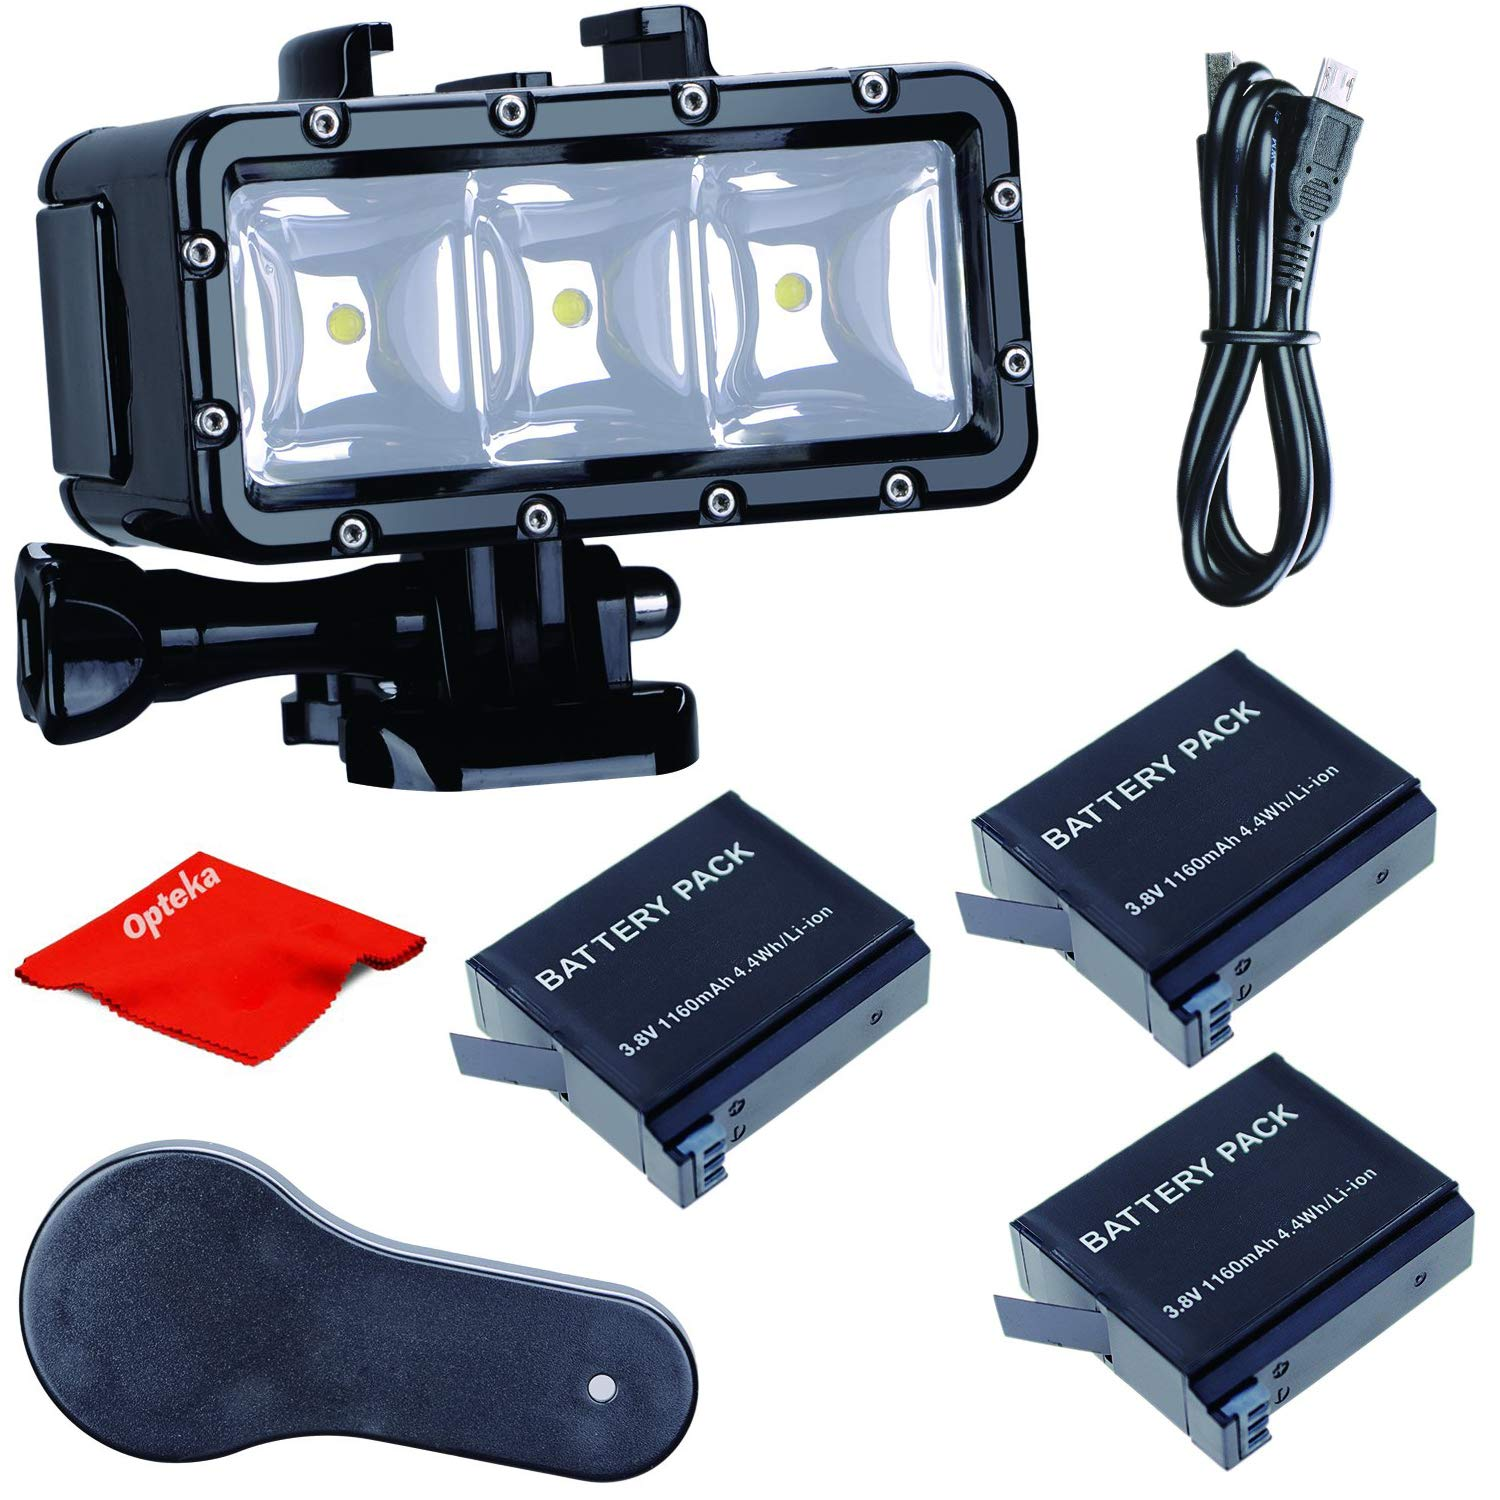 Opteka High-Power Underwater Diving Waterproof 147ft(45m) LED Video Light for GoPro Hero 7/6/5/5S/4/4S/3+/2/SJCAM/YI Action Cameras